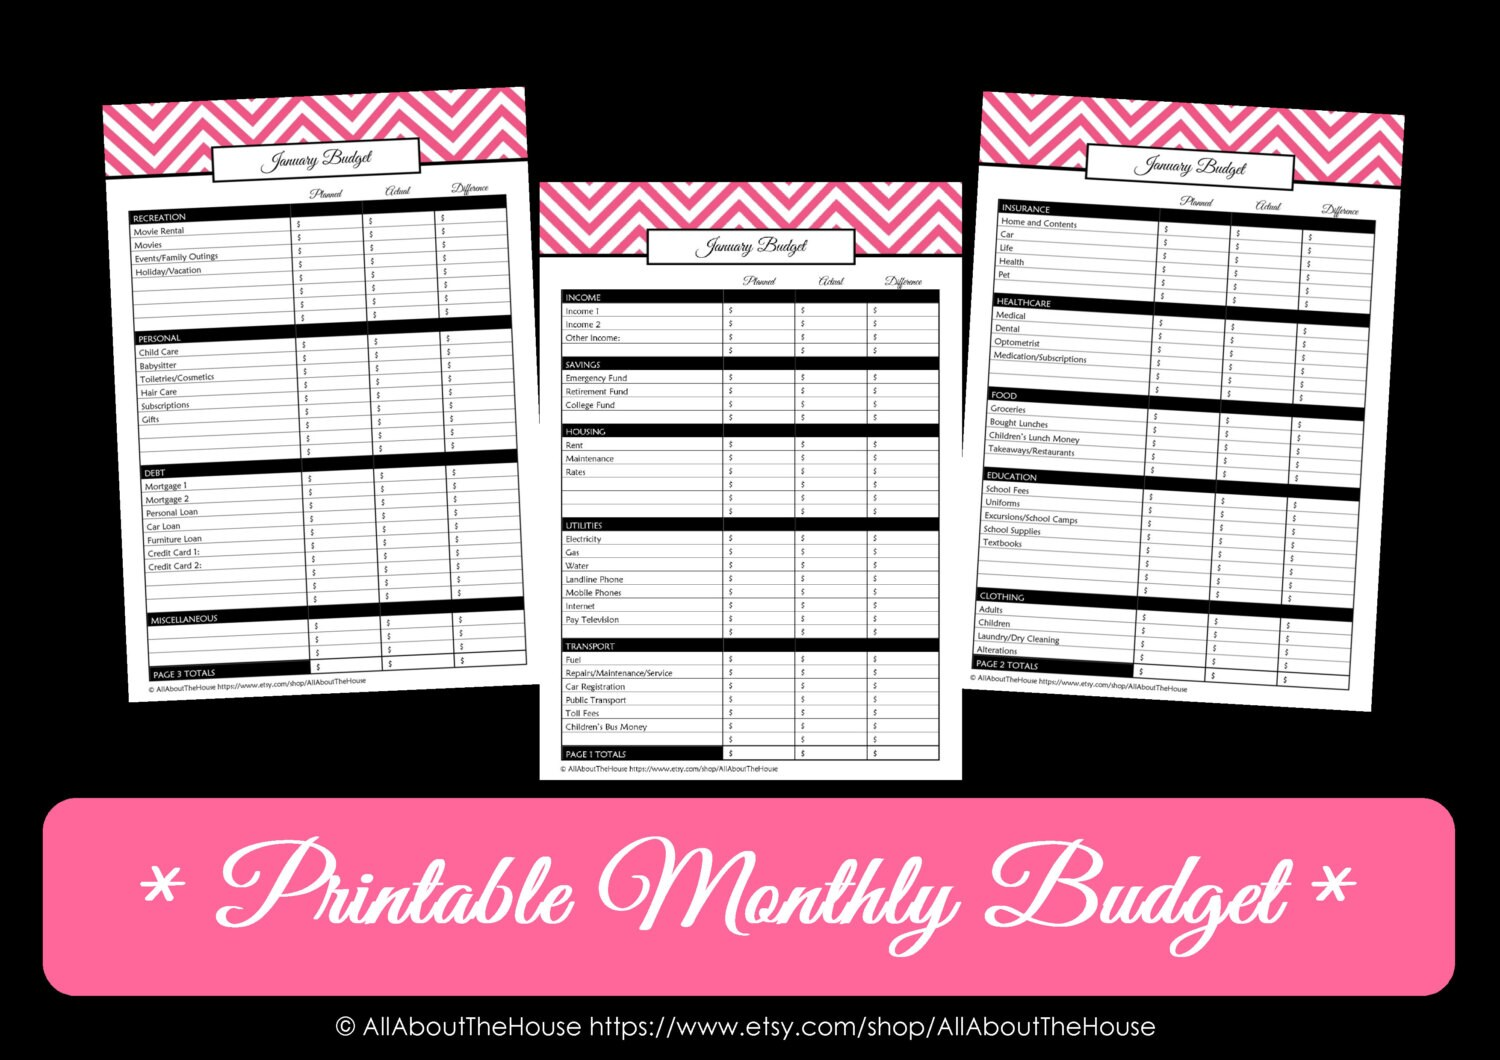 29 Images of Cute Monthly Budget Template | leseriail.com